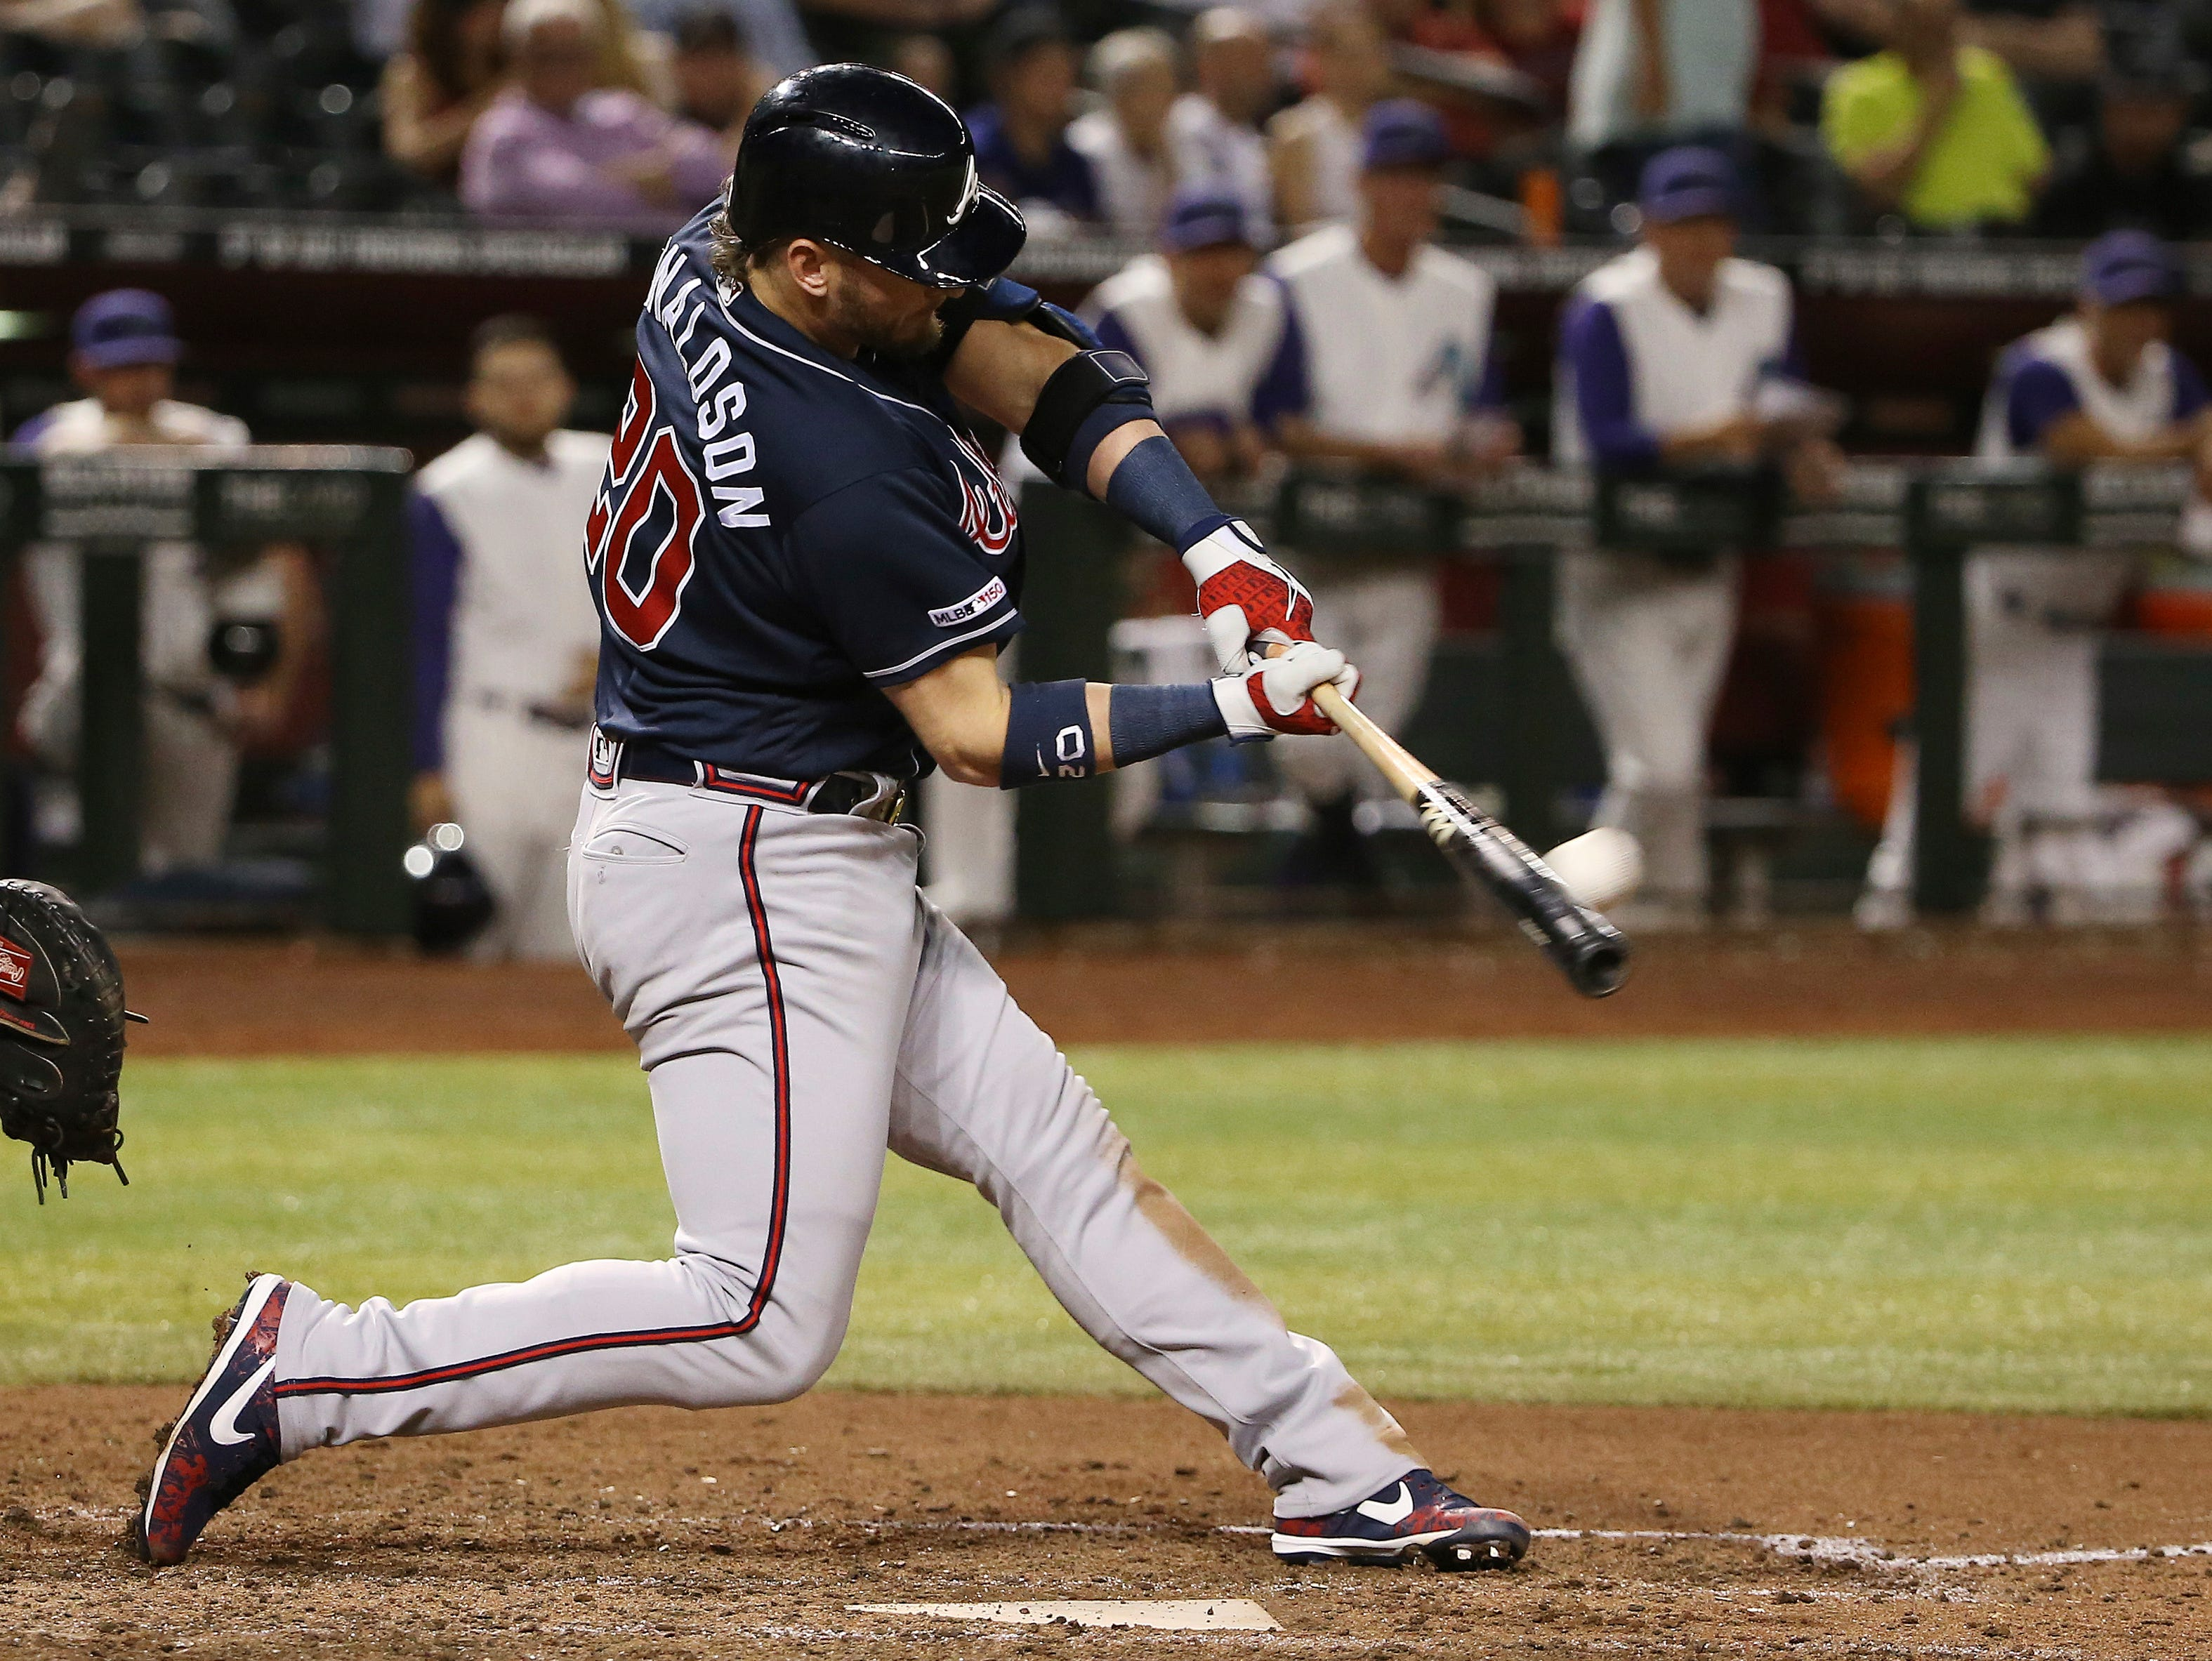 Atlanta Braves' Josh Donaldson connects for a home run against the Arizona Diamondbacks during the ninth inning of a baseball game Thursday, May 9, 2019, in Phoenix. (AP Photo/Ross D. Franklin)